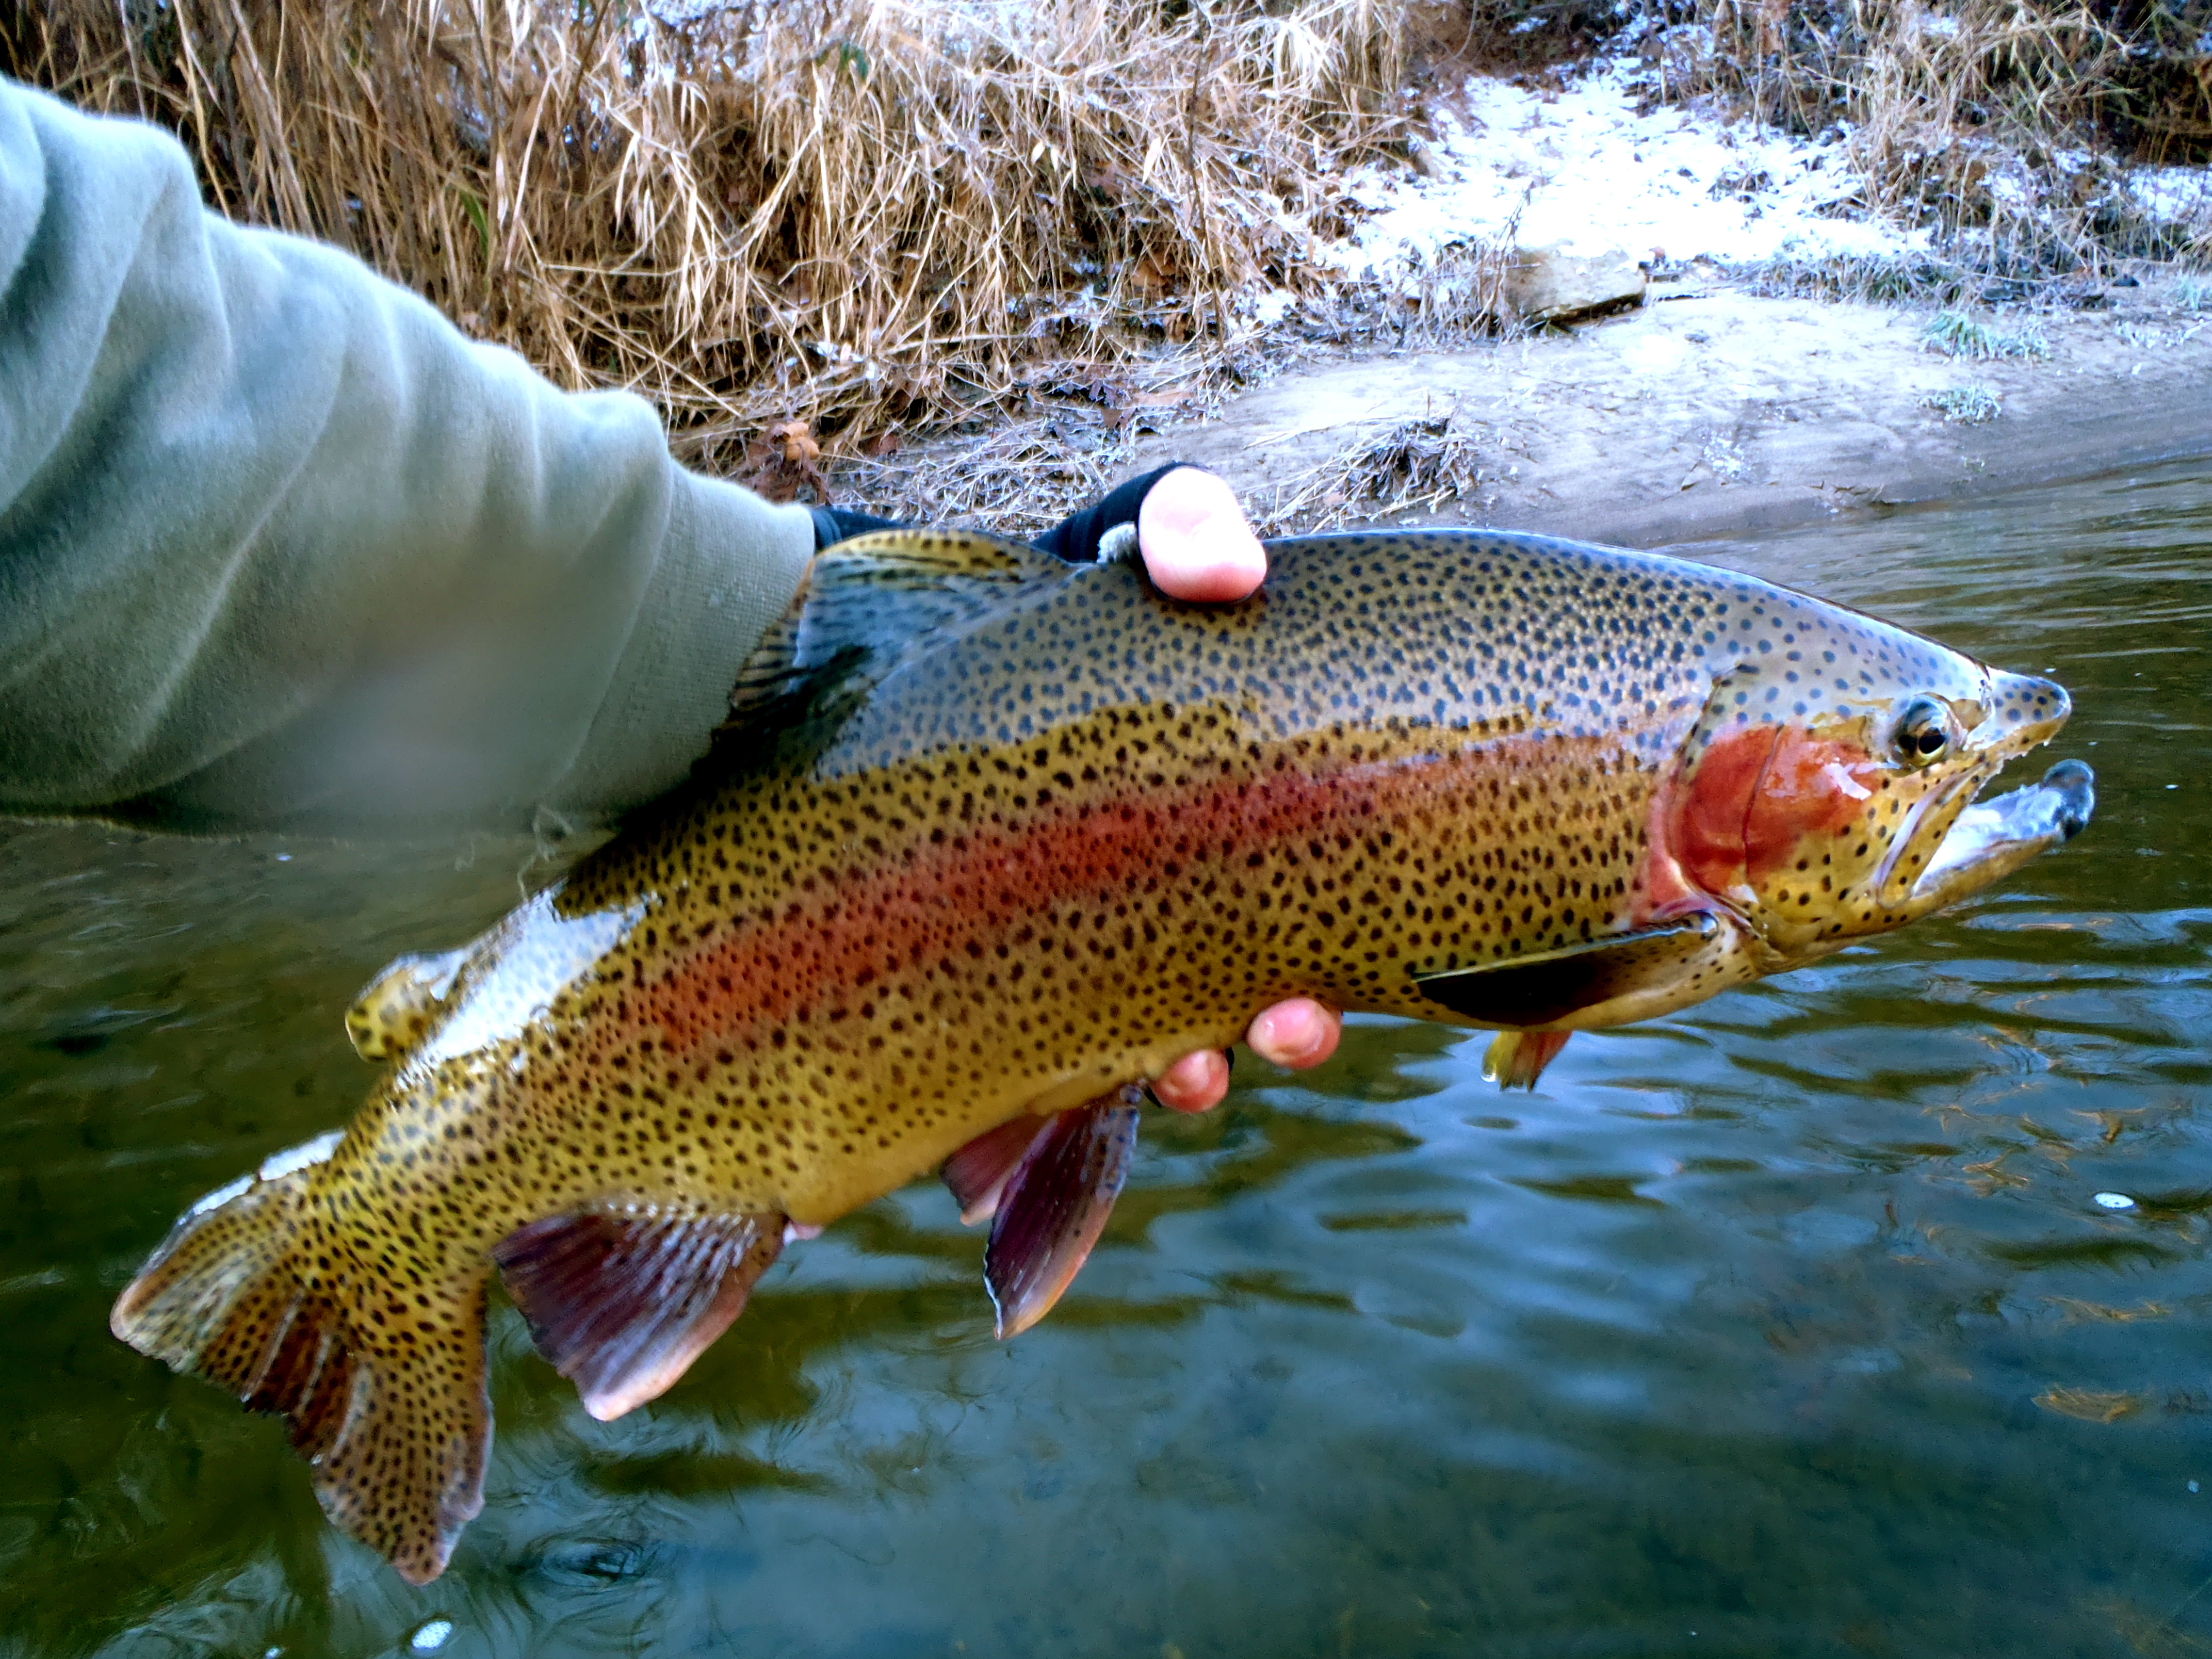 Cherokee fly shop hookers fly shop and guide service for Cherokee trout fishing